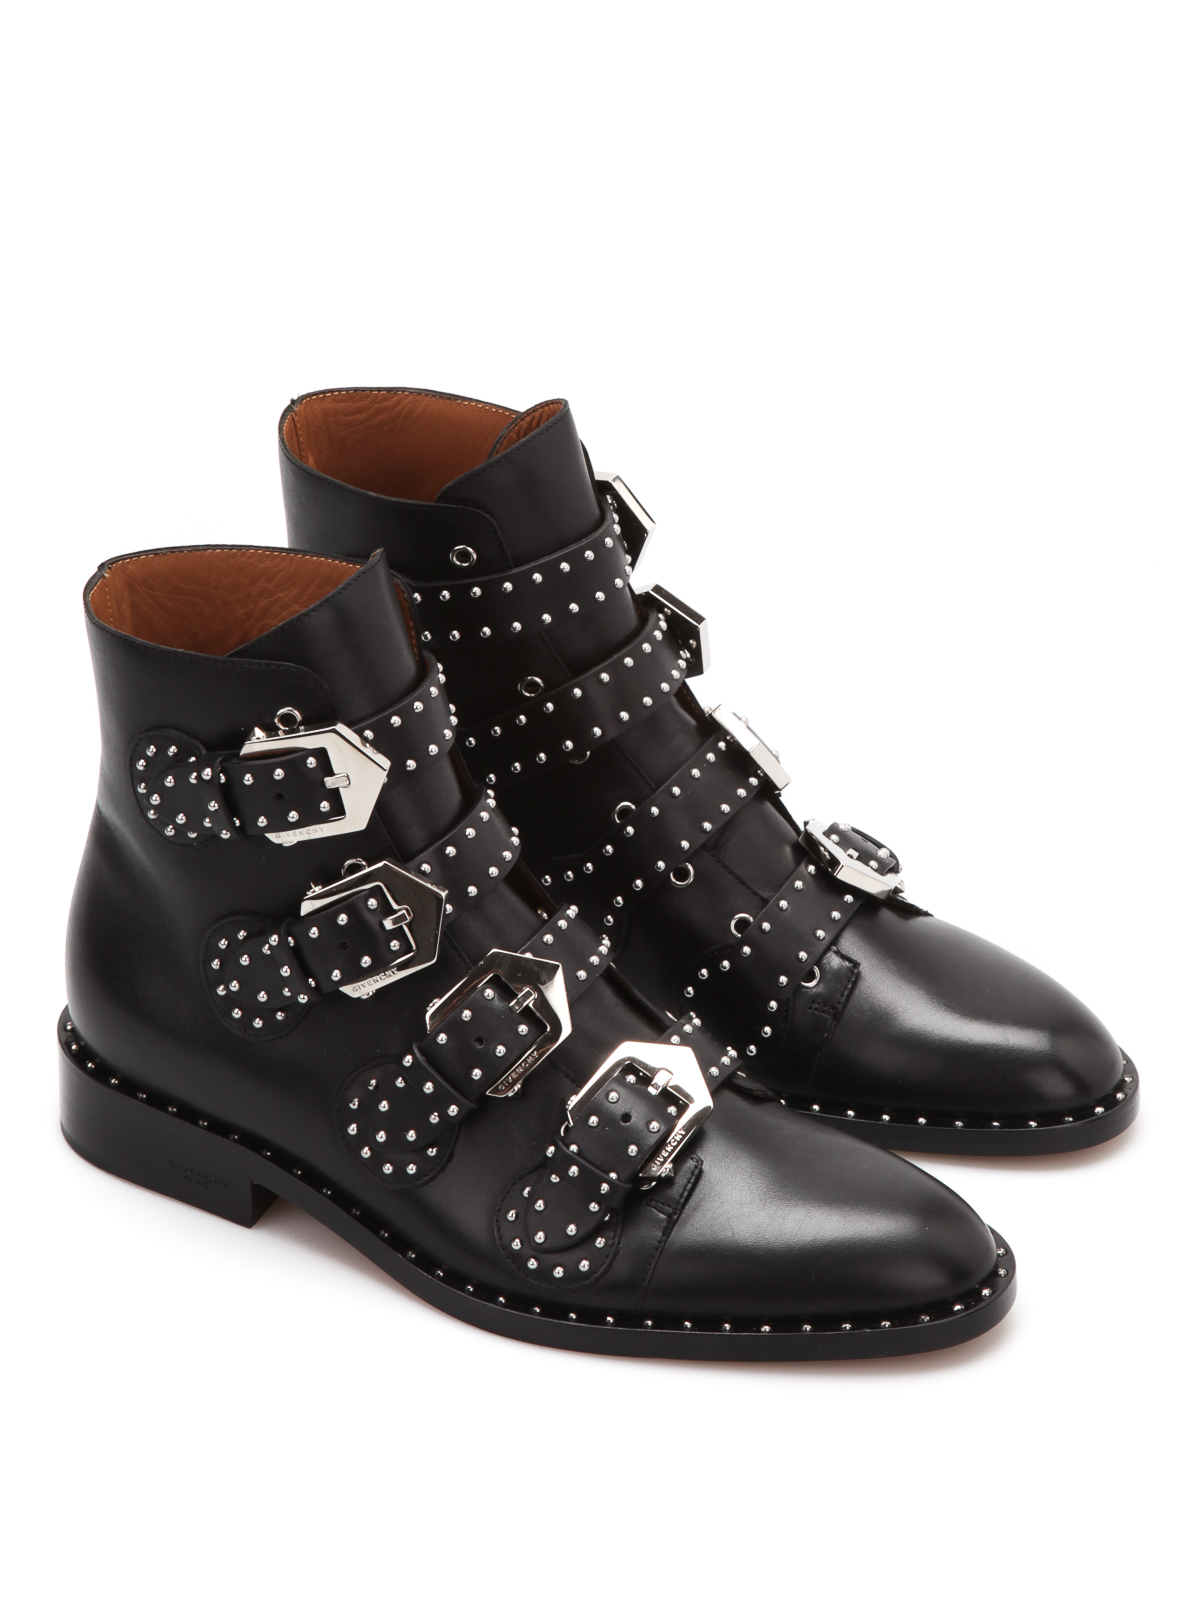 Studded Ankle Boots Boot Yc